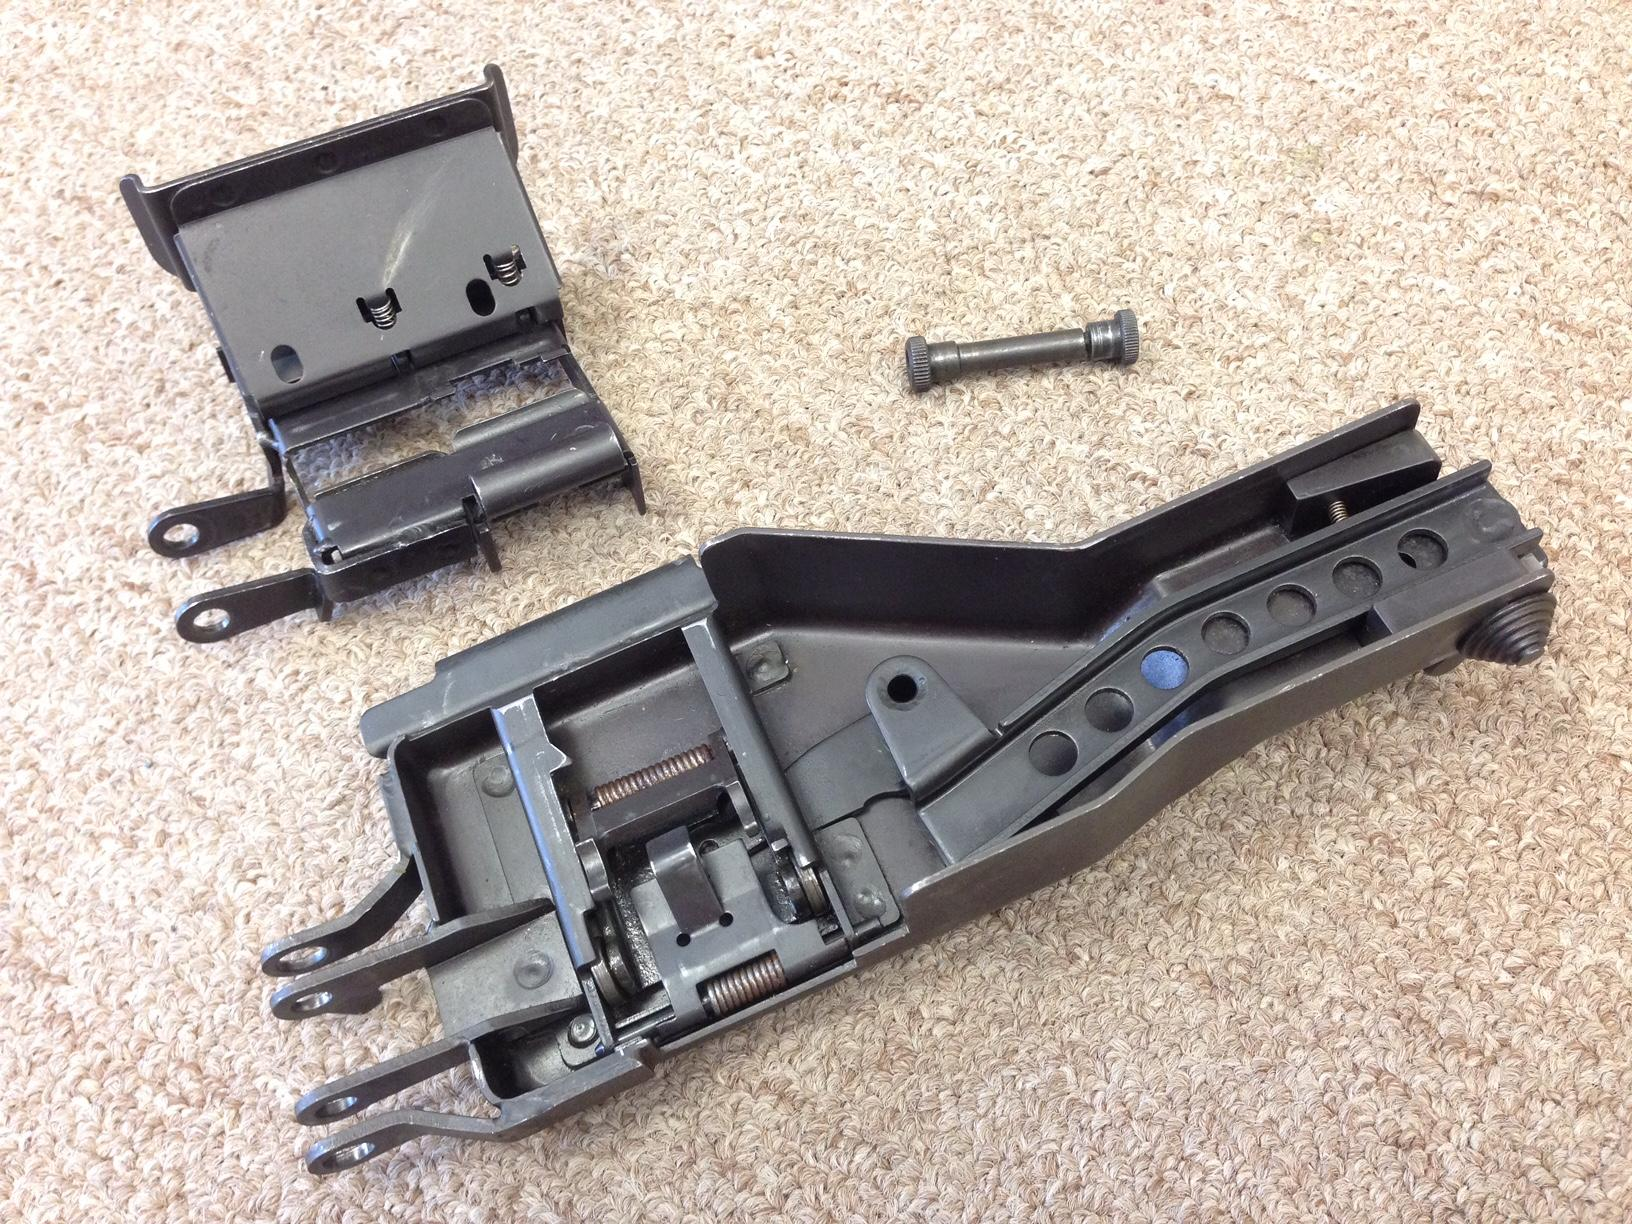 Wtt stoner 63 top cover and tray assembly parts and accessories i may consider trading towards rareexotic military firearms such as m16a1 sturmgewehr pre ban valmet m76 folder in 762x39 g series fn fal altavistaventures Image collections